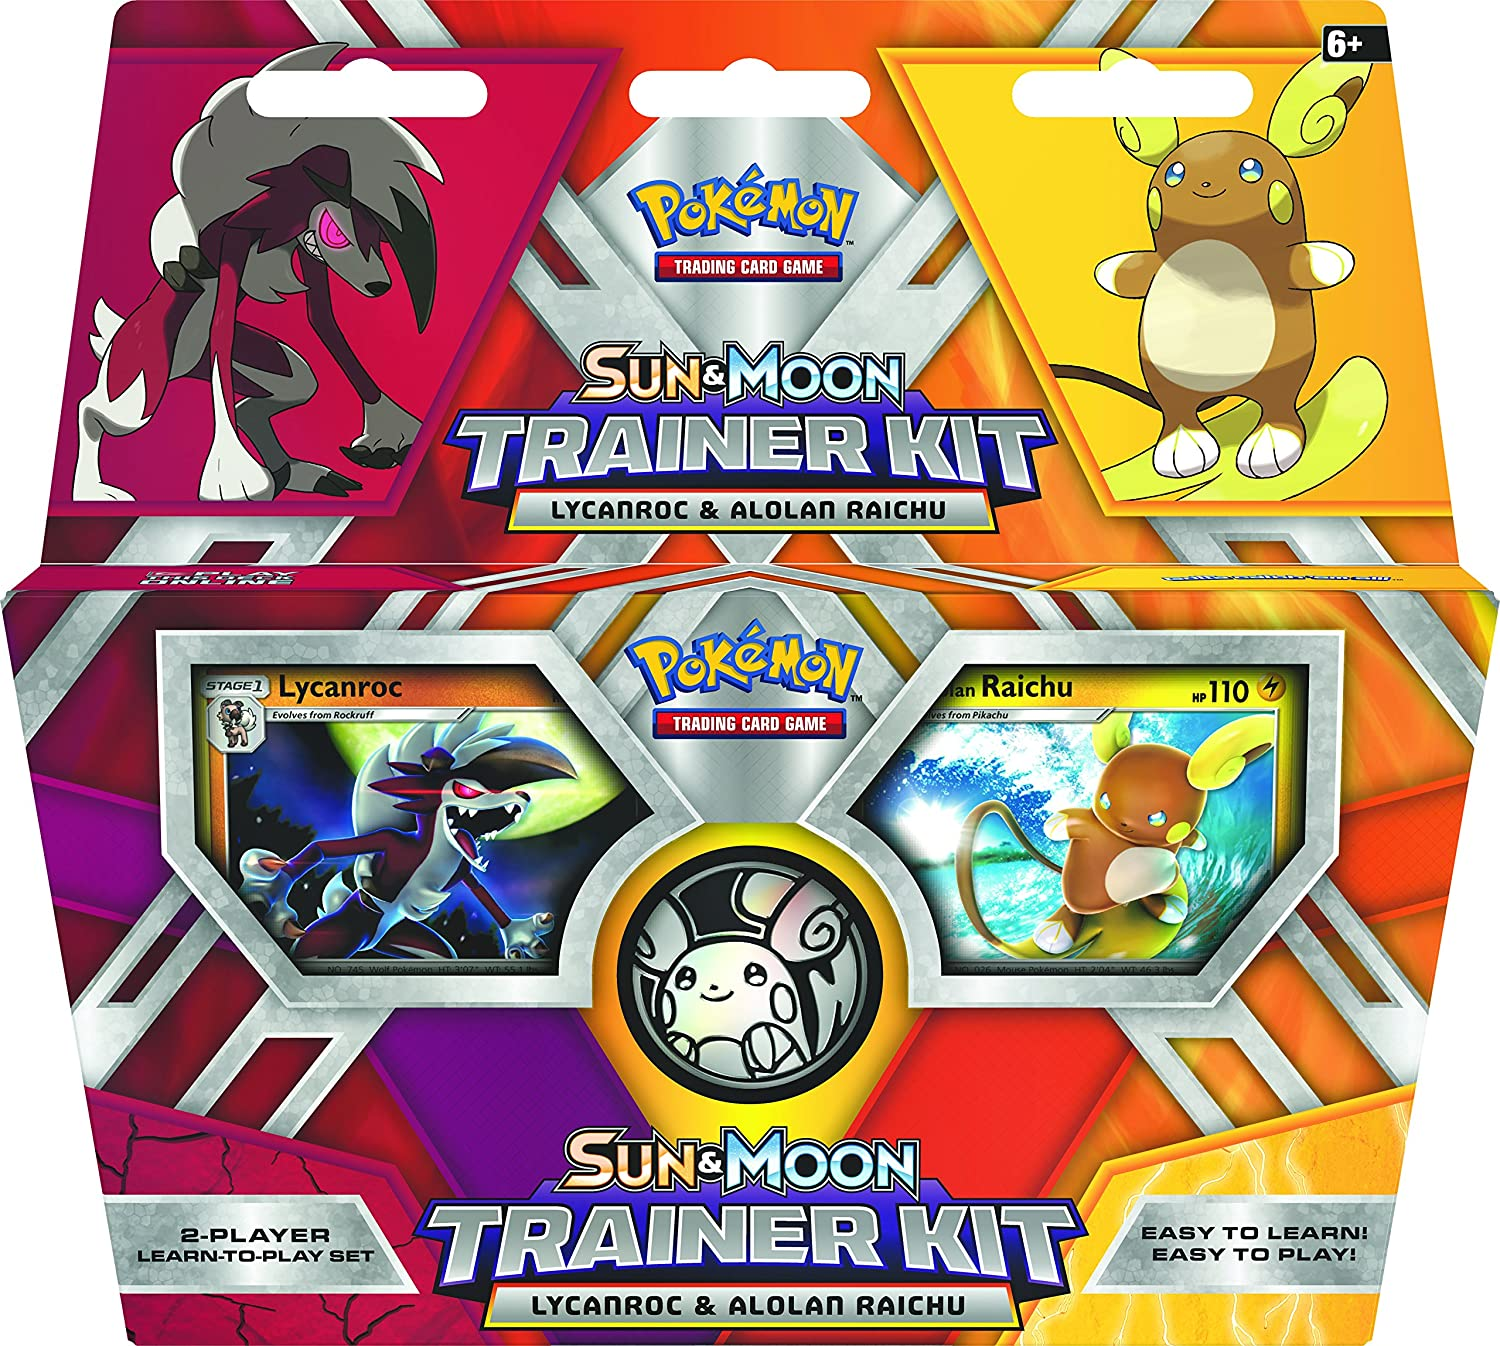 Pokemon Sun and Moon Trainer Kit | D20 Games